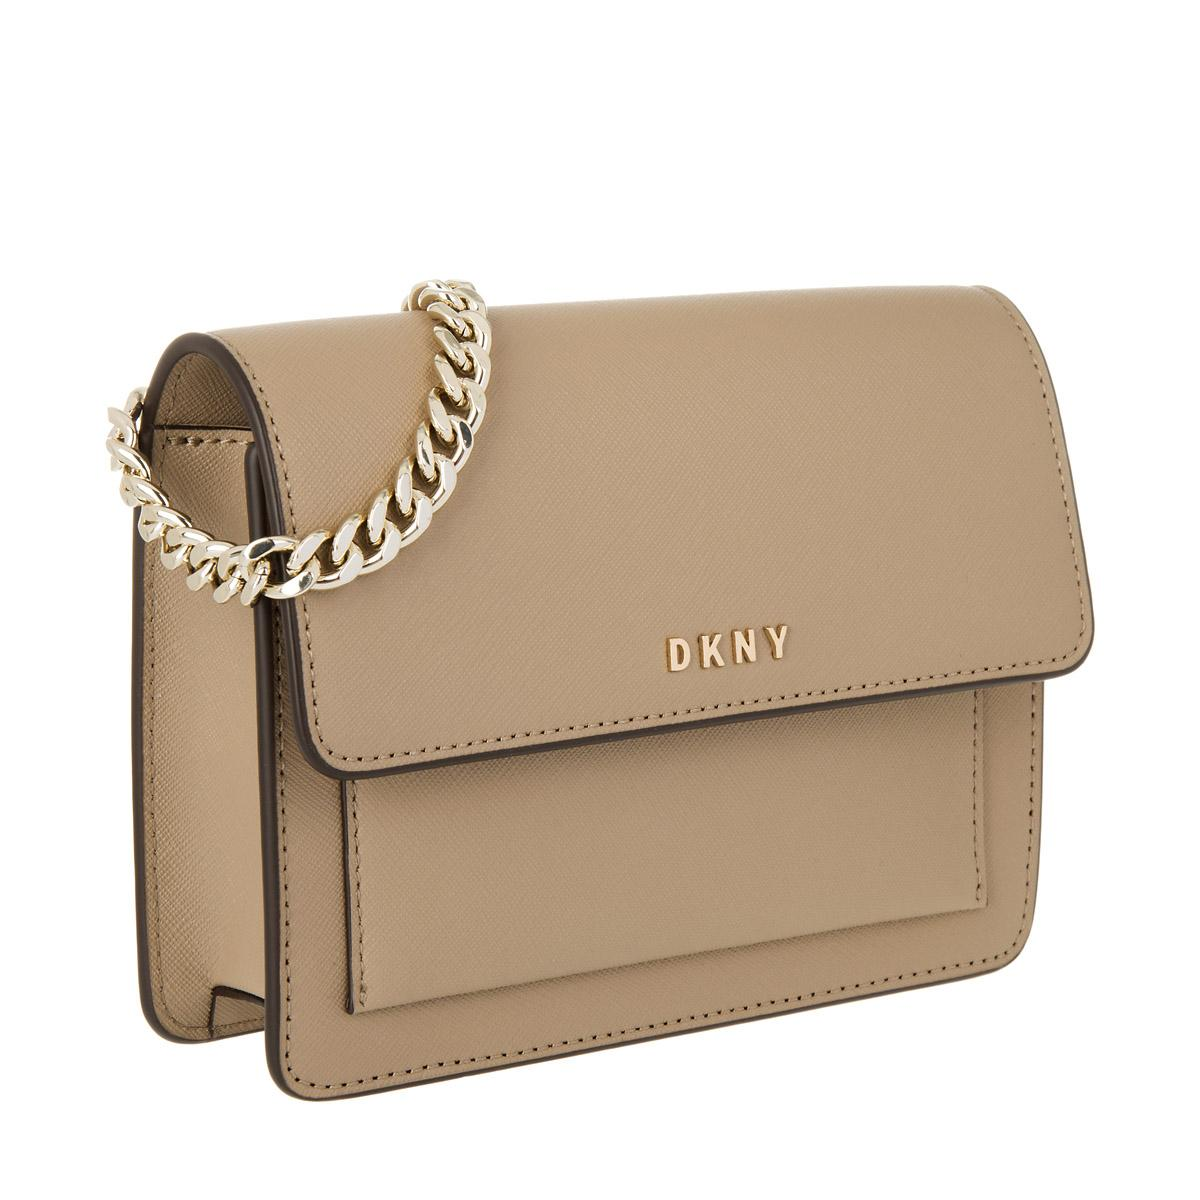 DKNY Leather Bryant Park Chain Item Mini Flap Crossbody Bag Natural